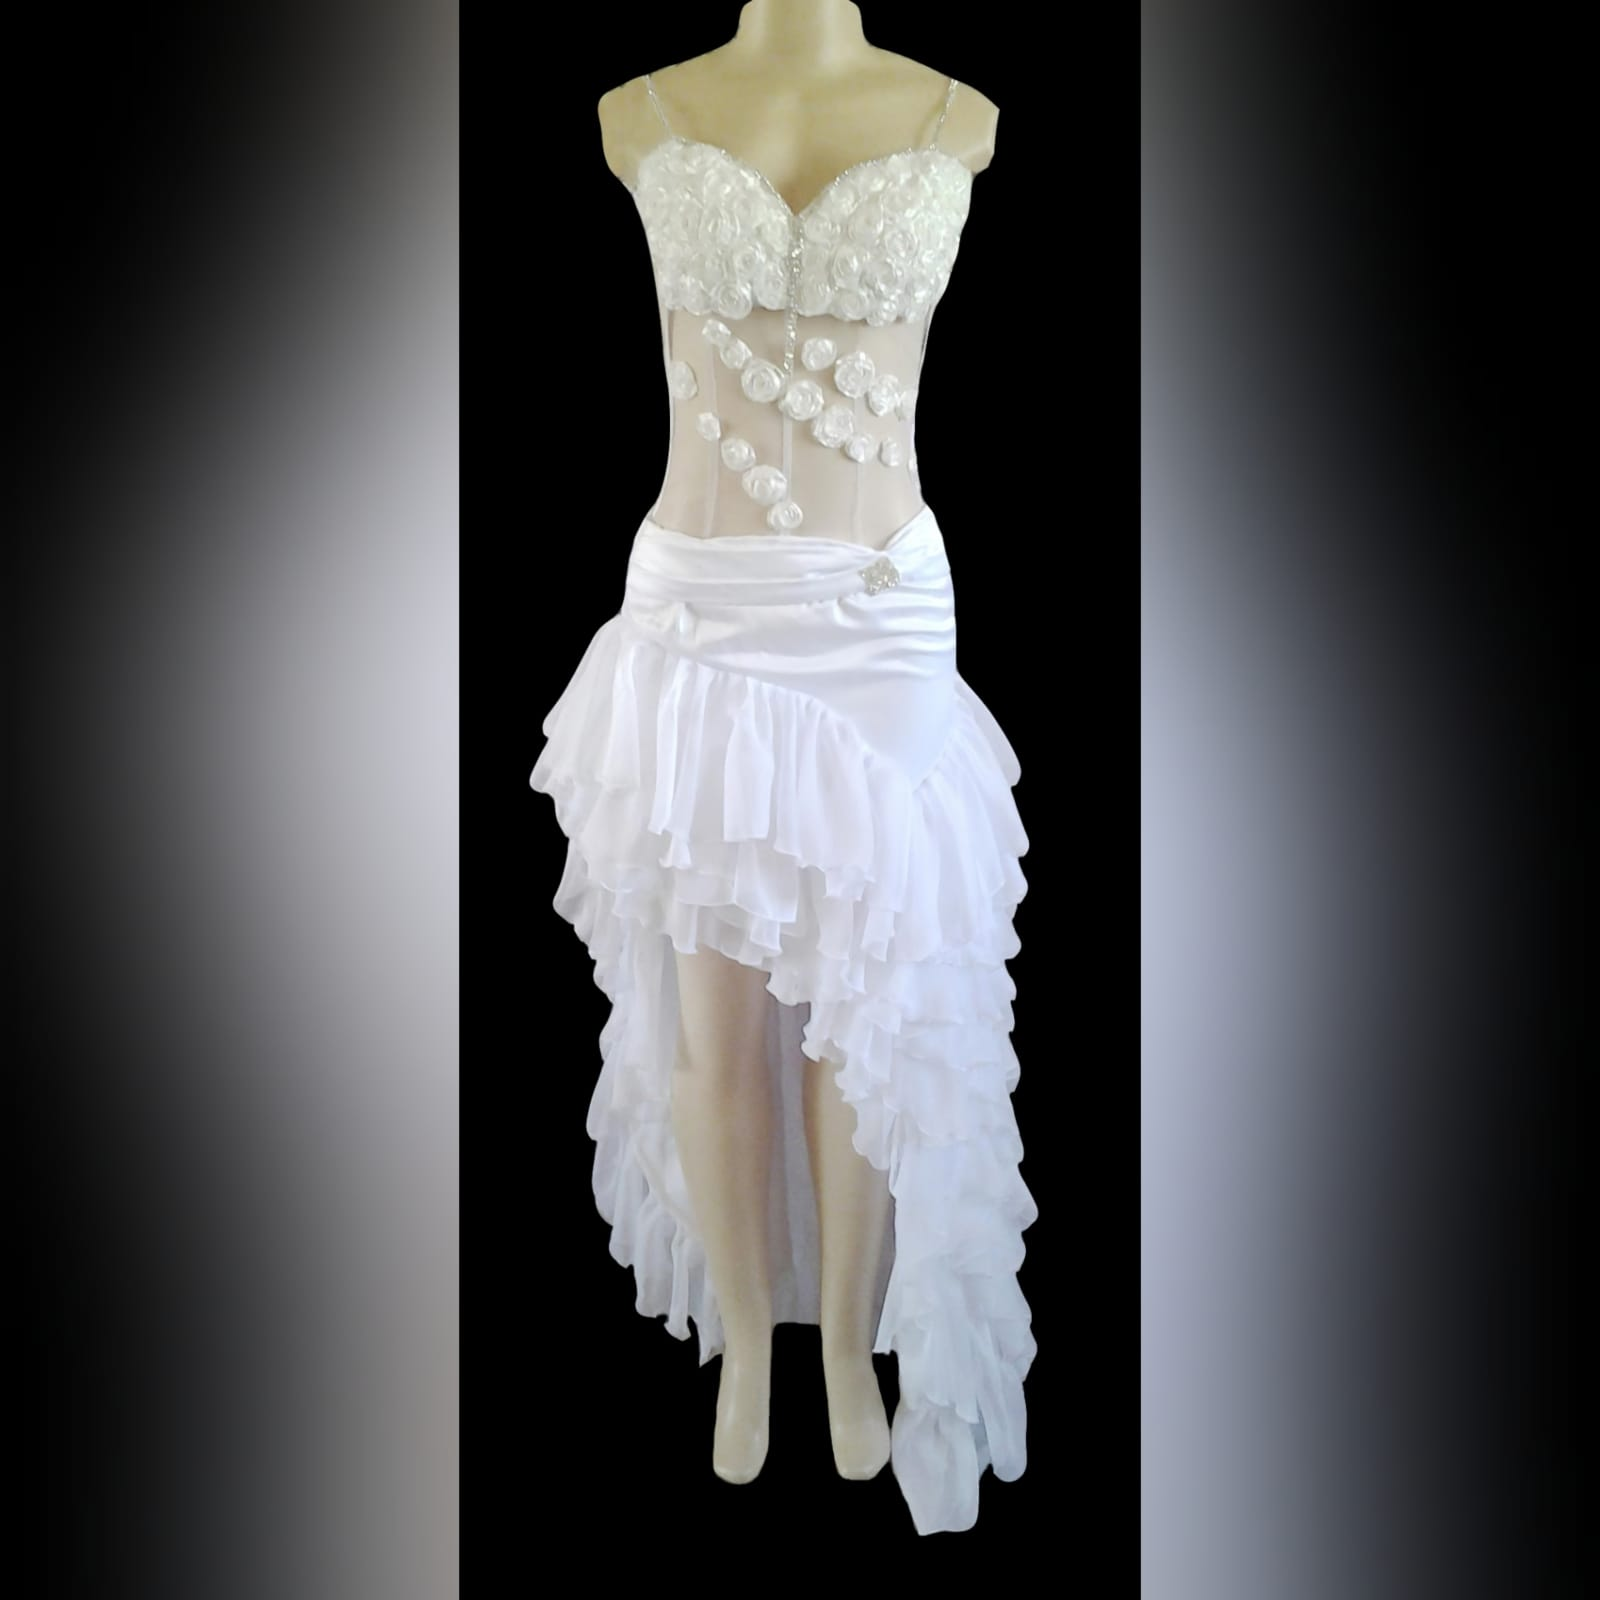 Sexy frilled white wedding dress 1 sexy white wedding dress with a sheer bodice. Bust covered with frilled flower detail going down the bodice with a pleated low waist belt and a hi-lo to the side of the wedding dress. This wedding dress is finished with chiffon frills and diamante detail. Each flower is detailed with clear beads.